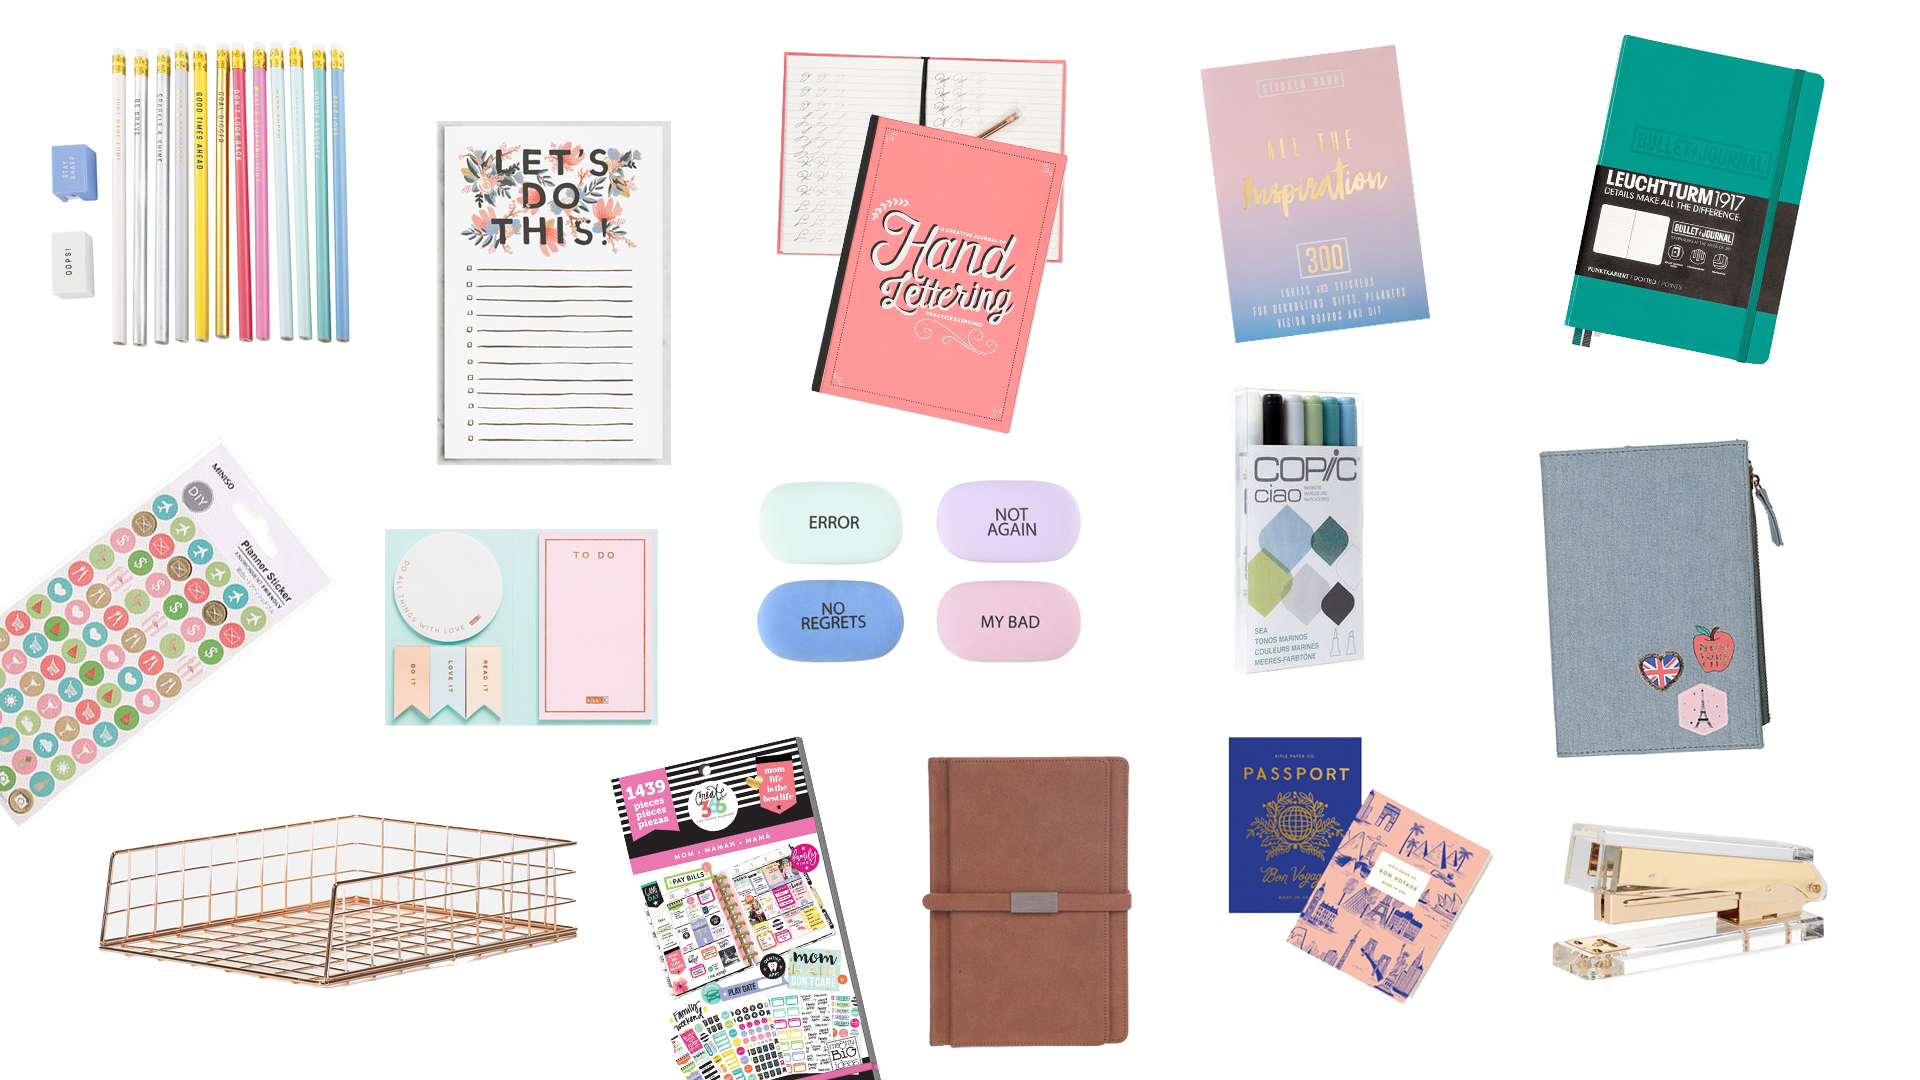 Stationery You Didn't Know You Wanted Until Now